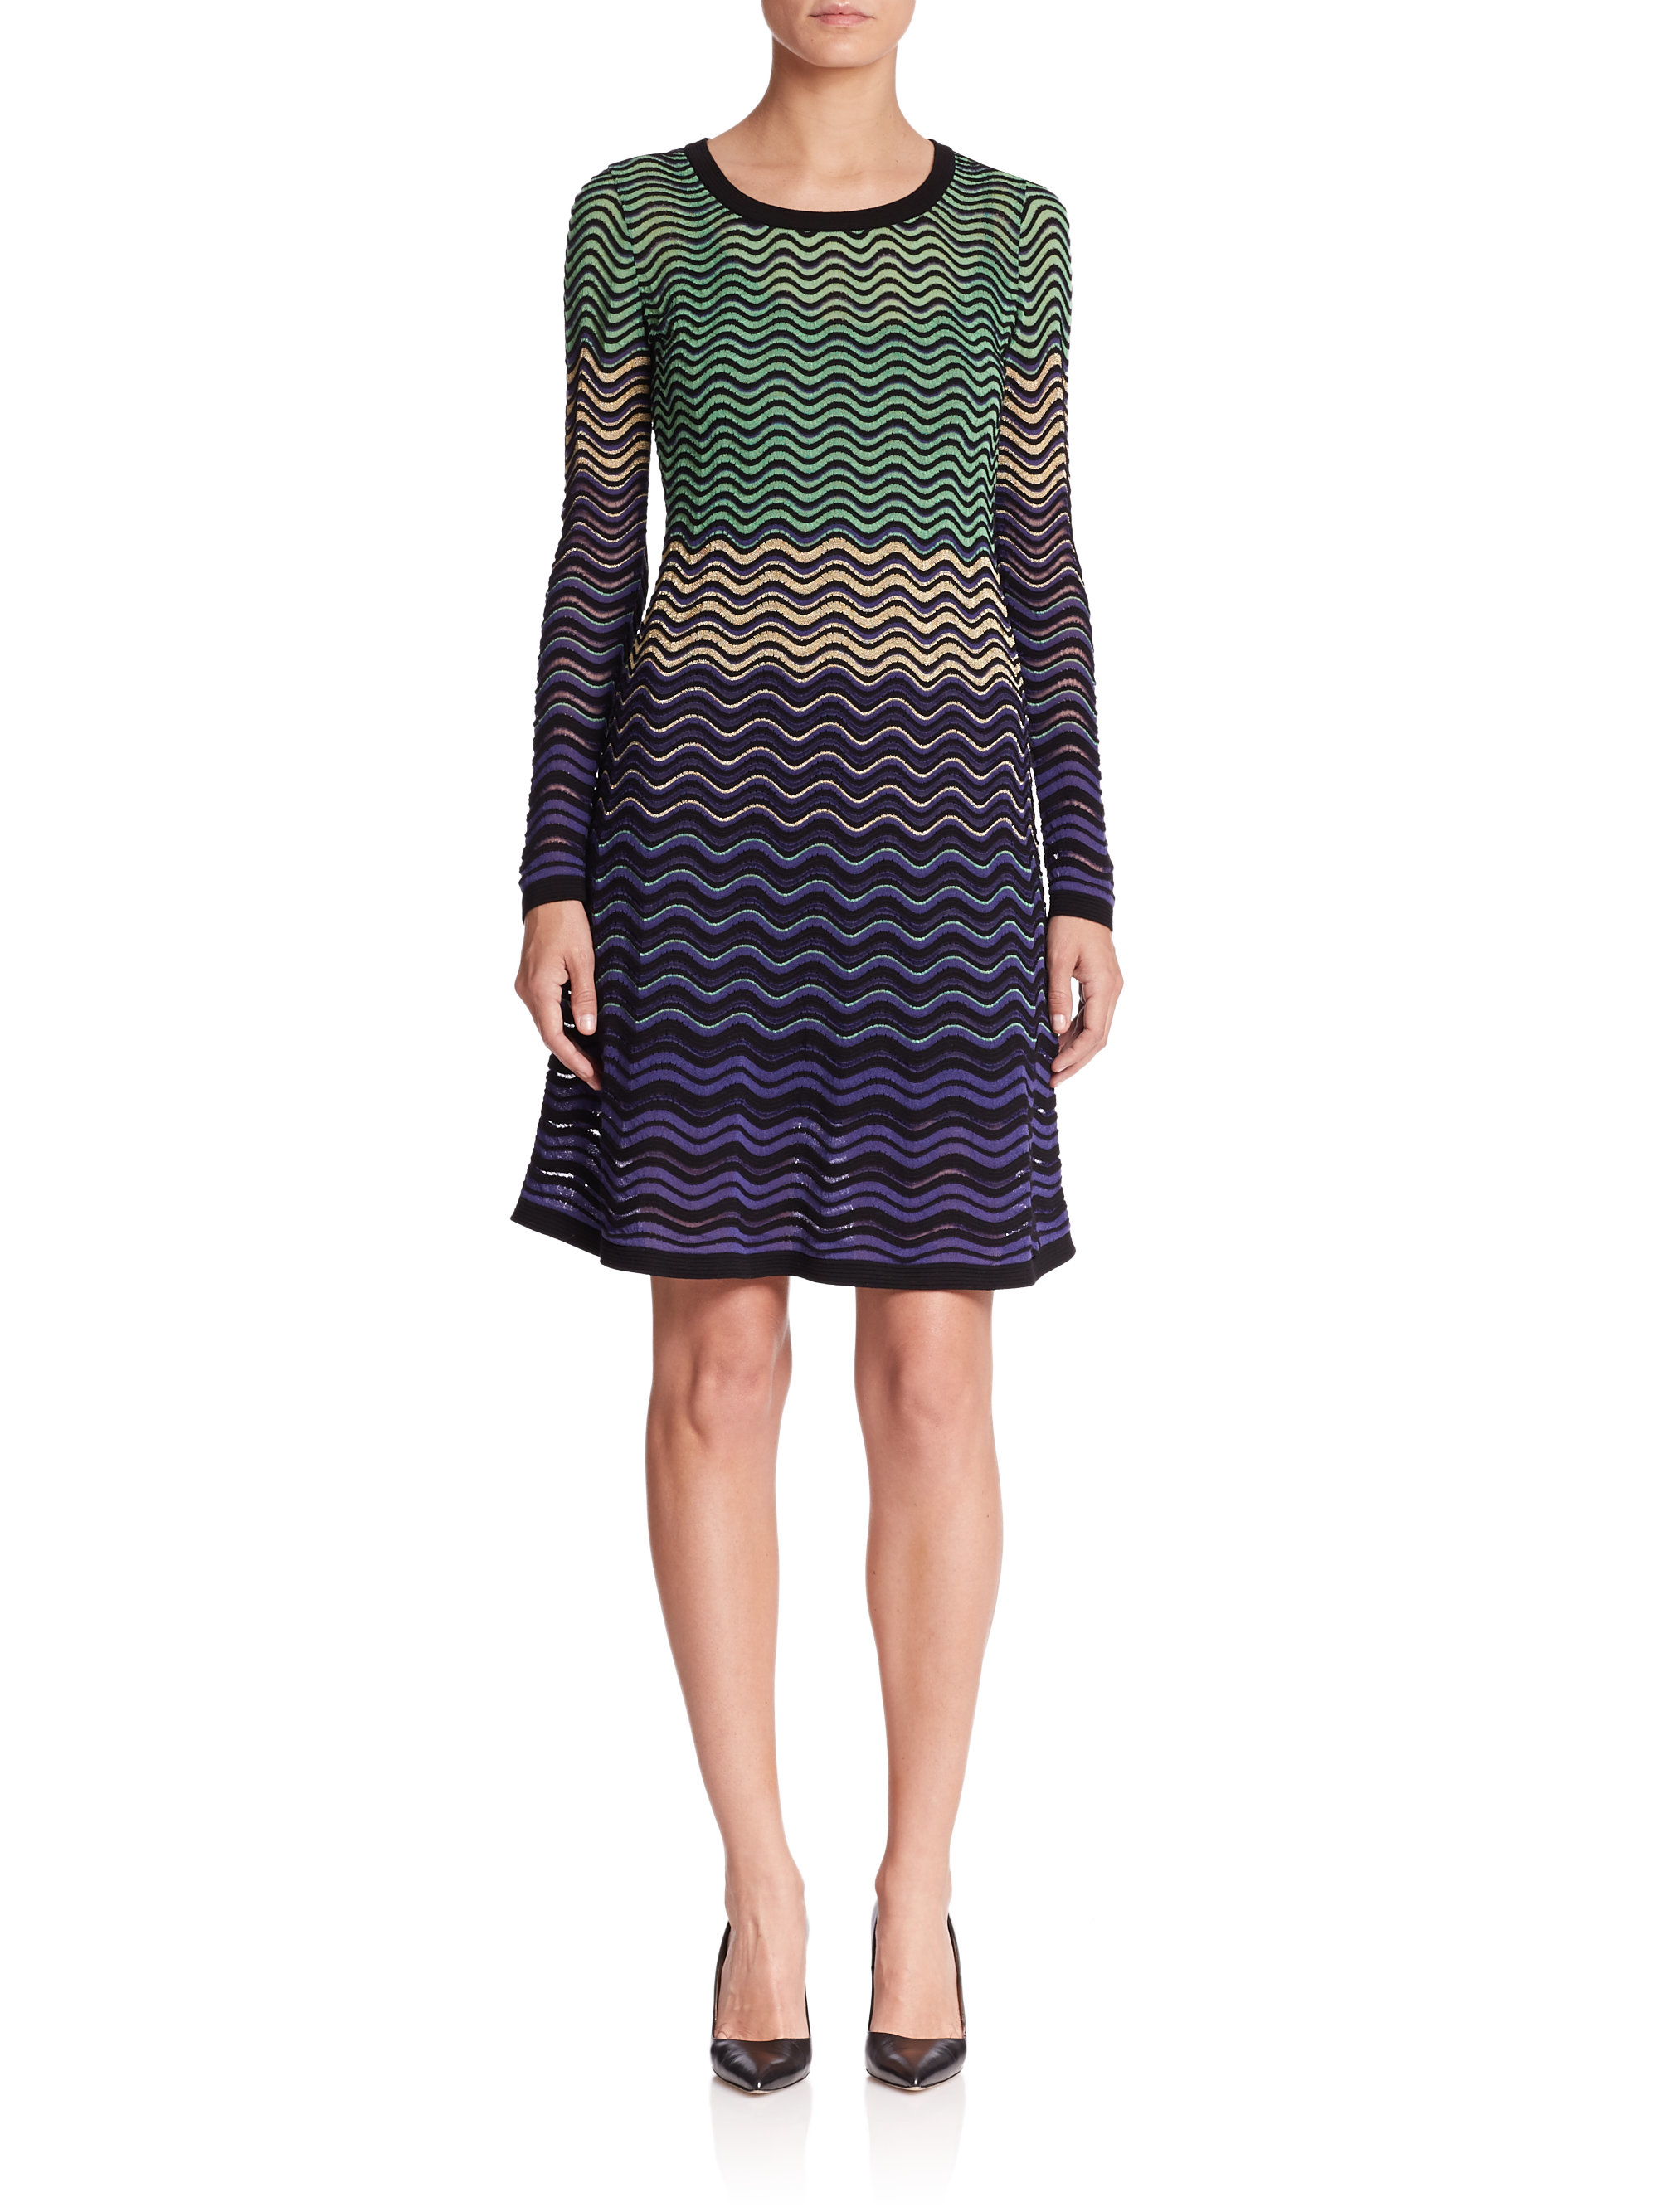 Violet Dress Knitting Pattern : M missoni Metallic Ripple-pattern Knit Dress in Purple (violet-multi) Lyst